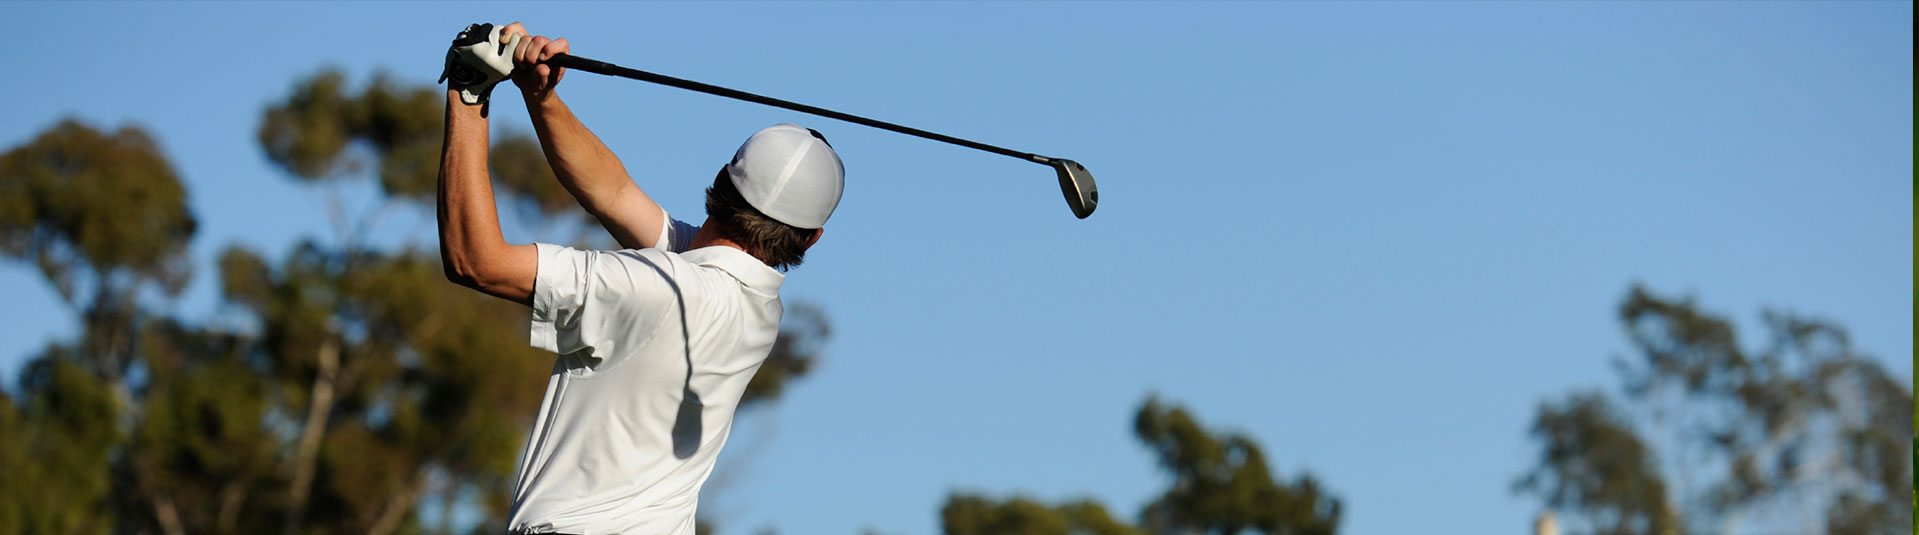 A golfer swings his club